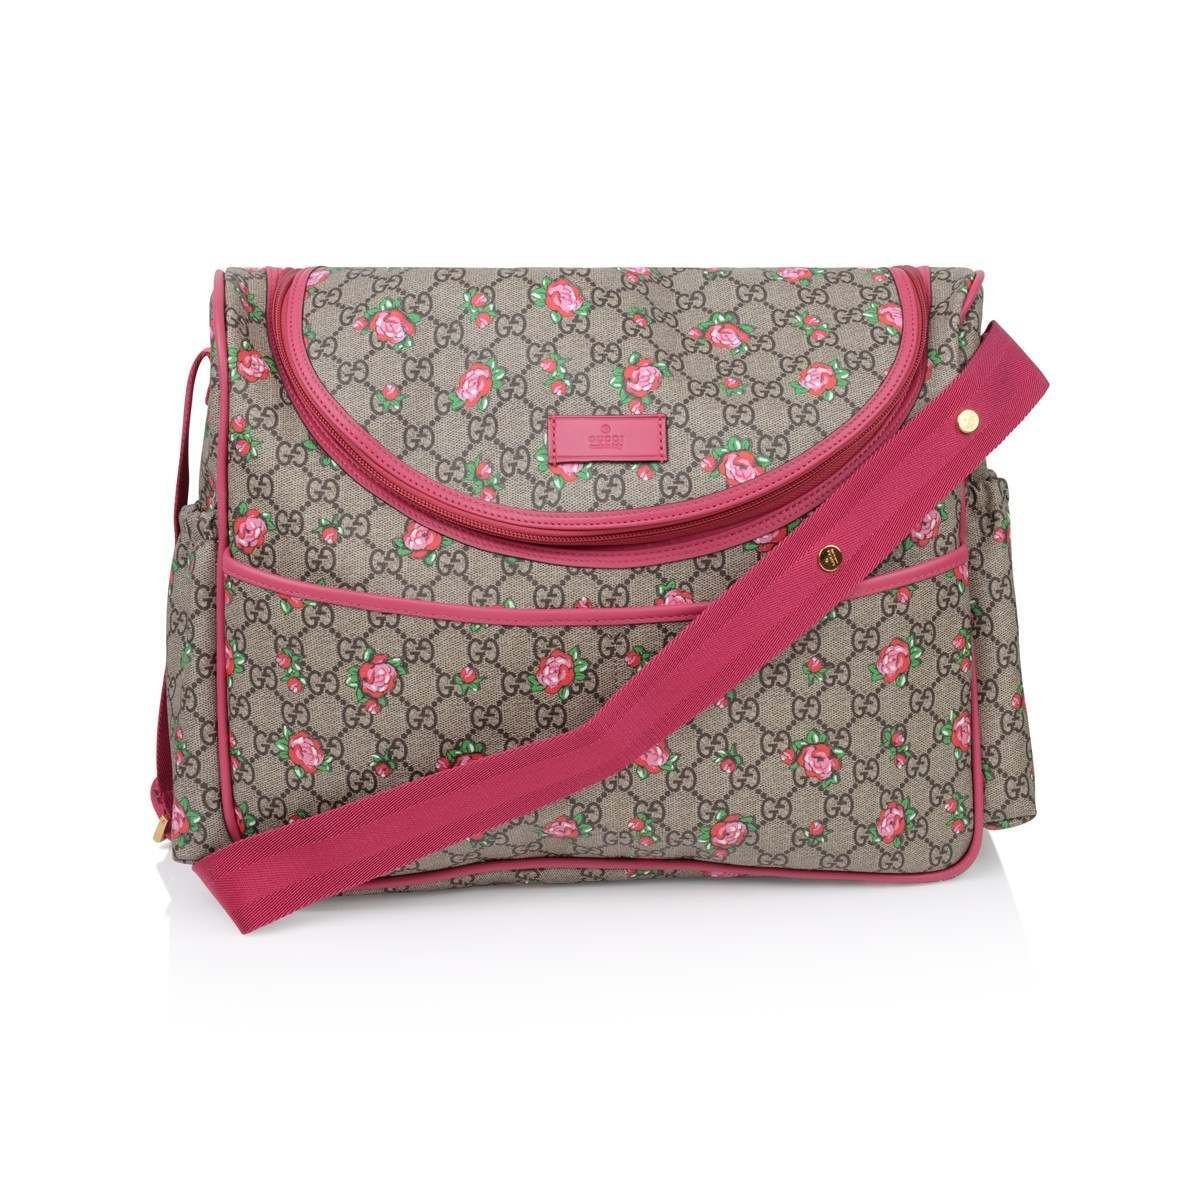 046c79ac9dd4 Amazon.com  Gucci Rose Bud Zip Pink Print GG Canvas Diaper Bag Beige Girl  Baby Italy New  Shoes